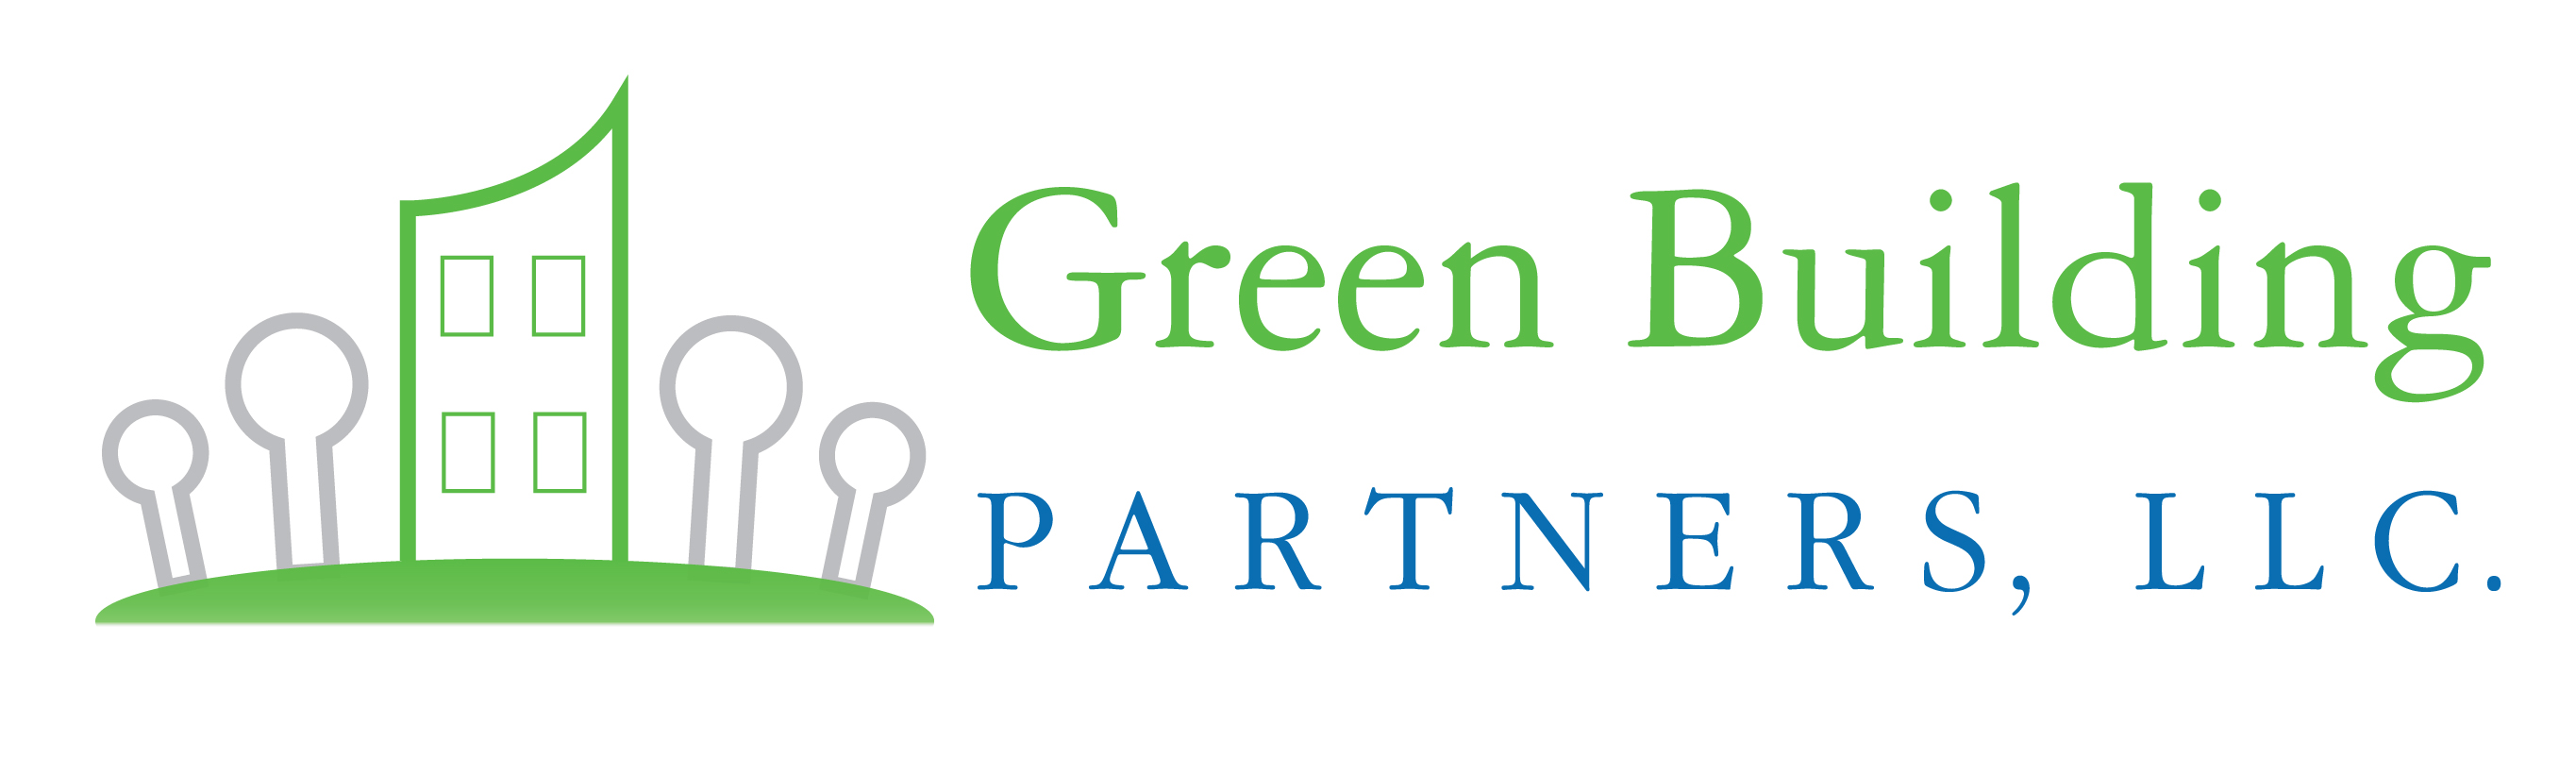 Green Building Partners